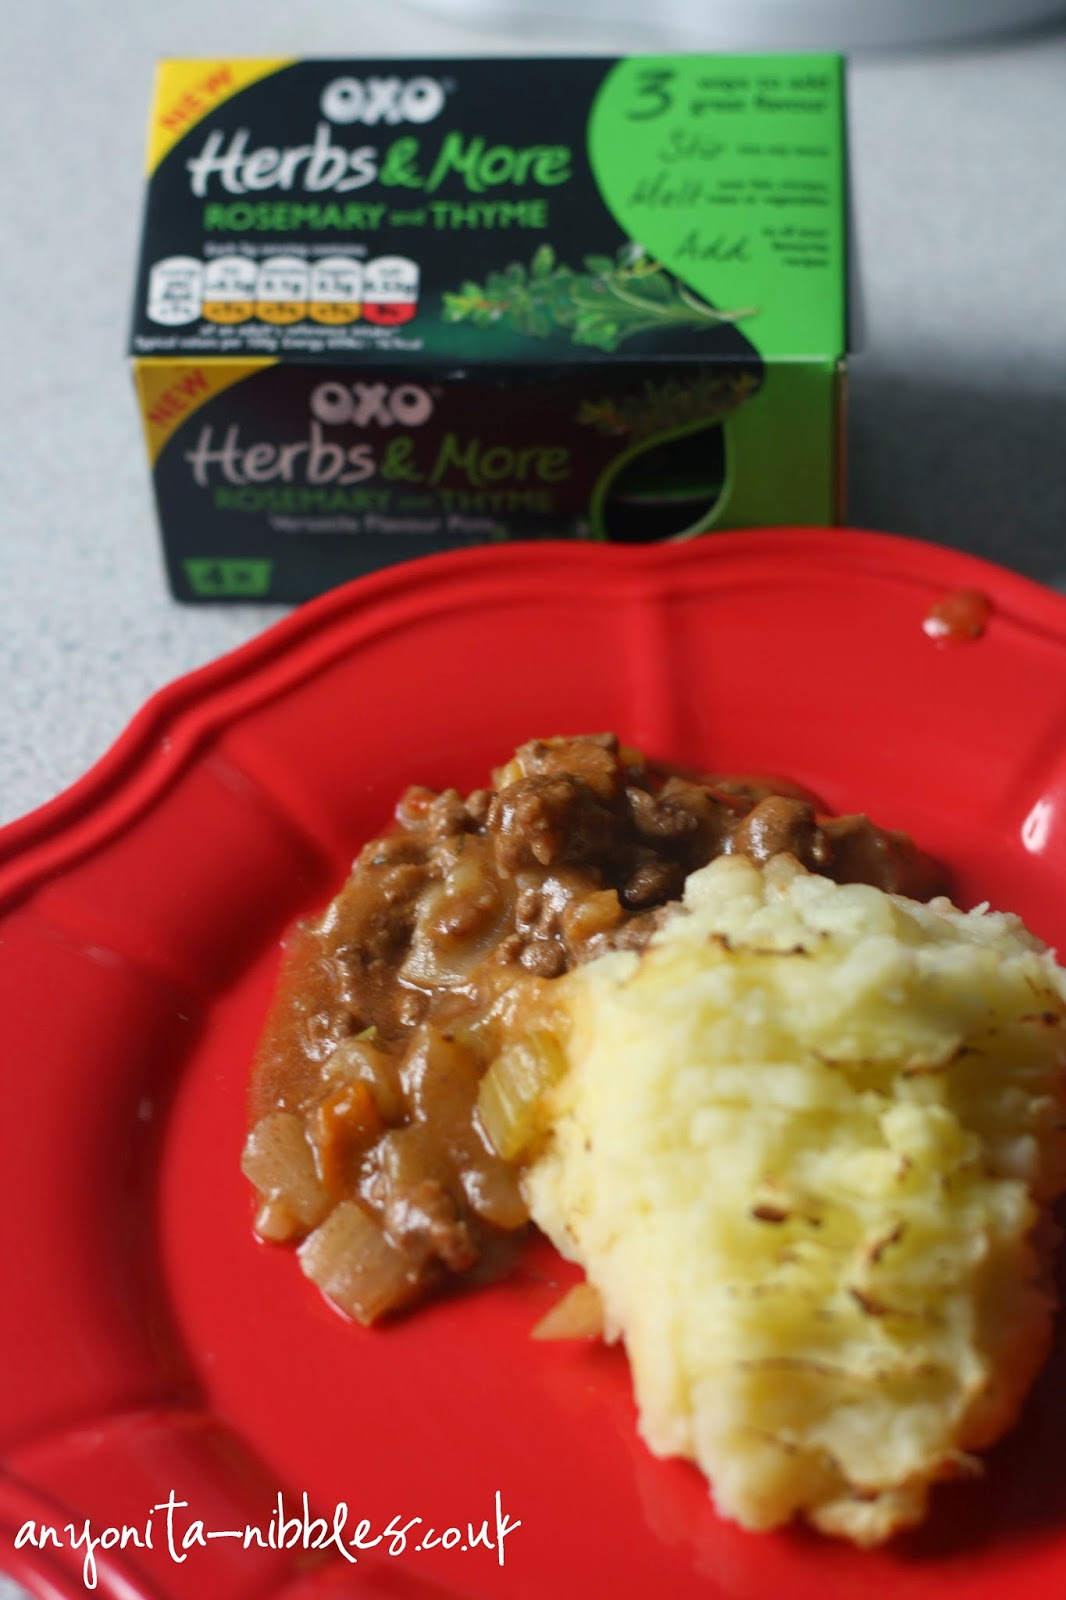 A serving of OXO's Kitchen Magician Cottage Pie from Anyonita-nibbles.co.uk